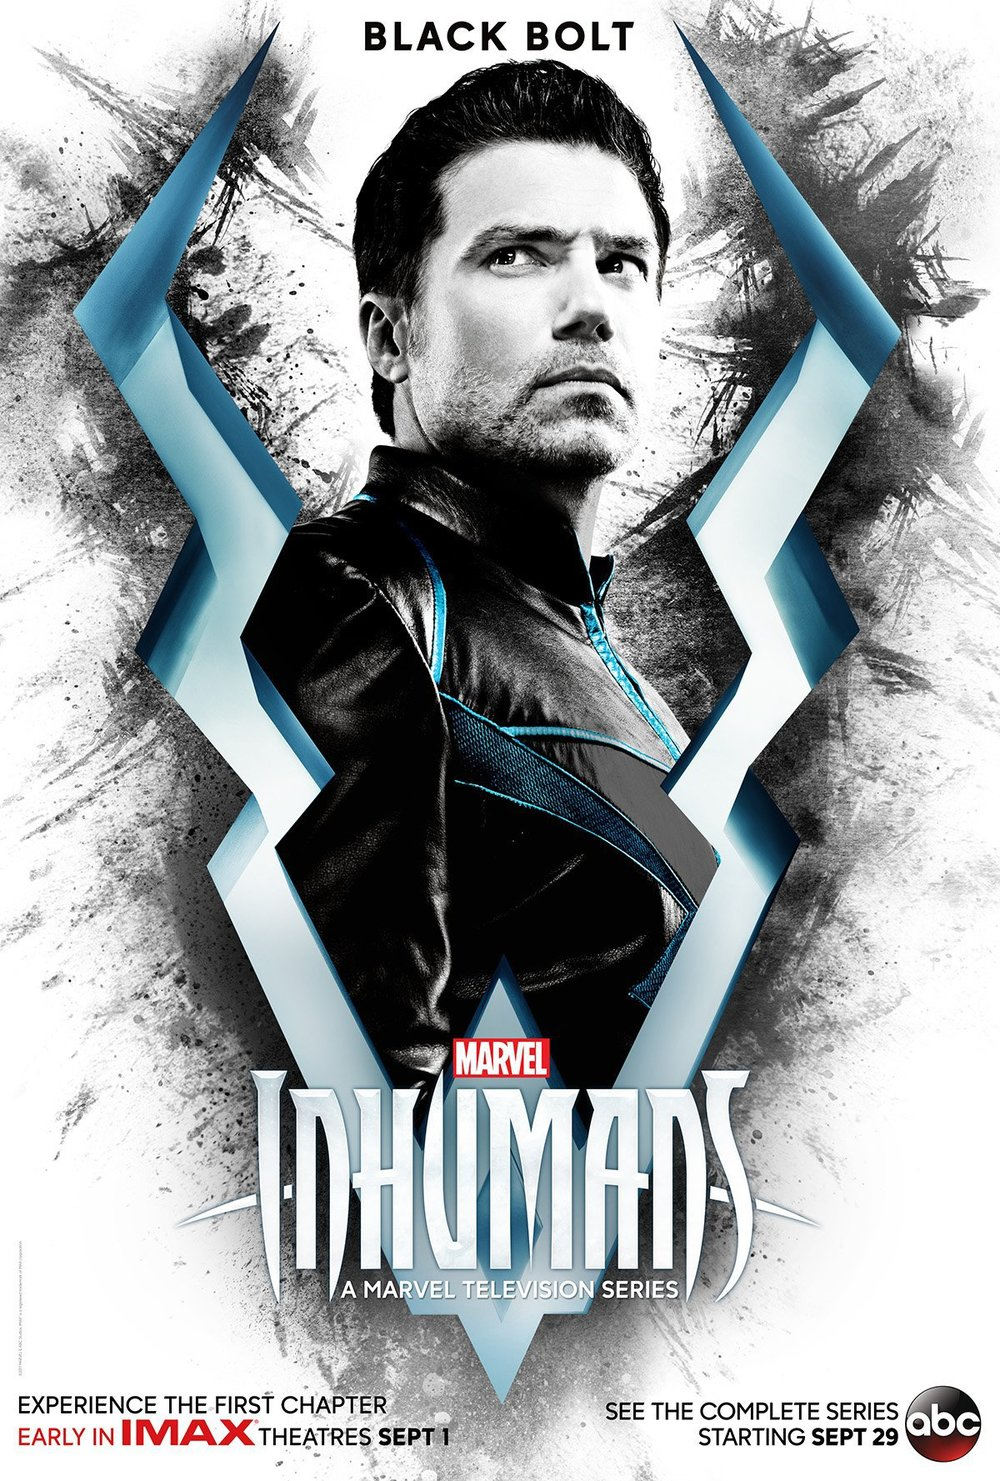 marvels-the-inhumans-character-posters-black-bolt-1010812.jpg